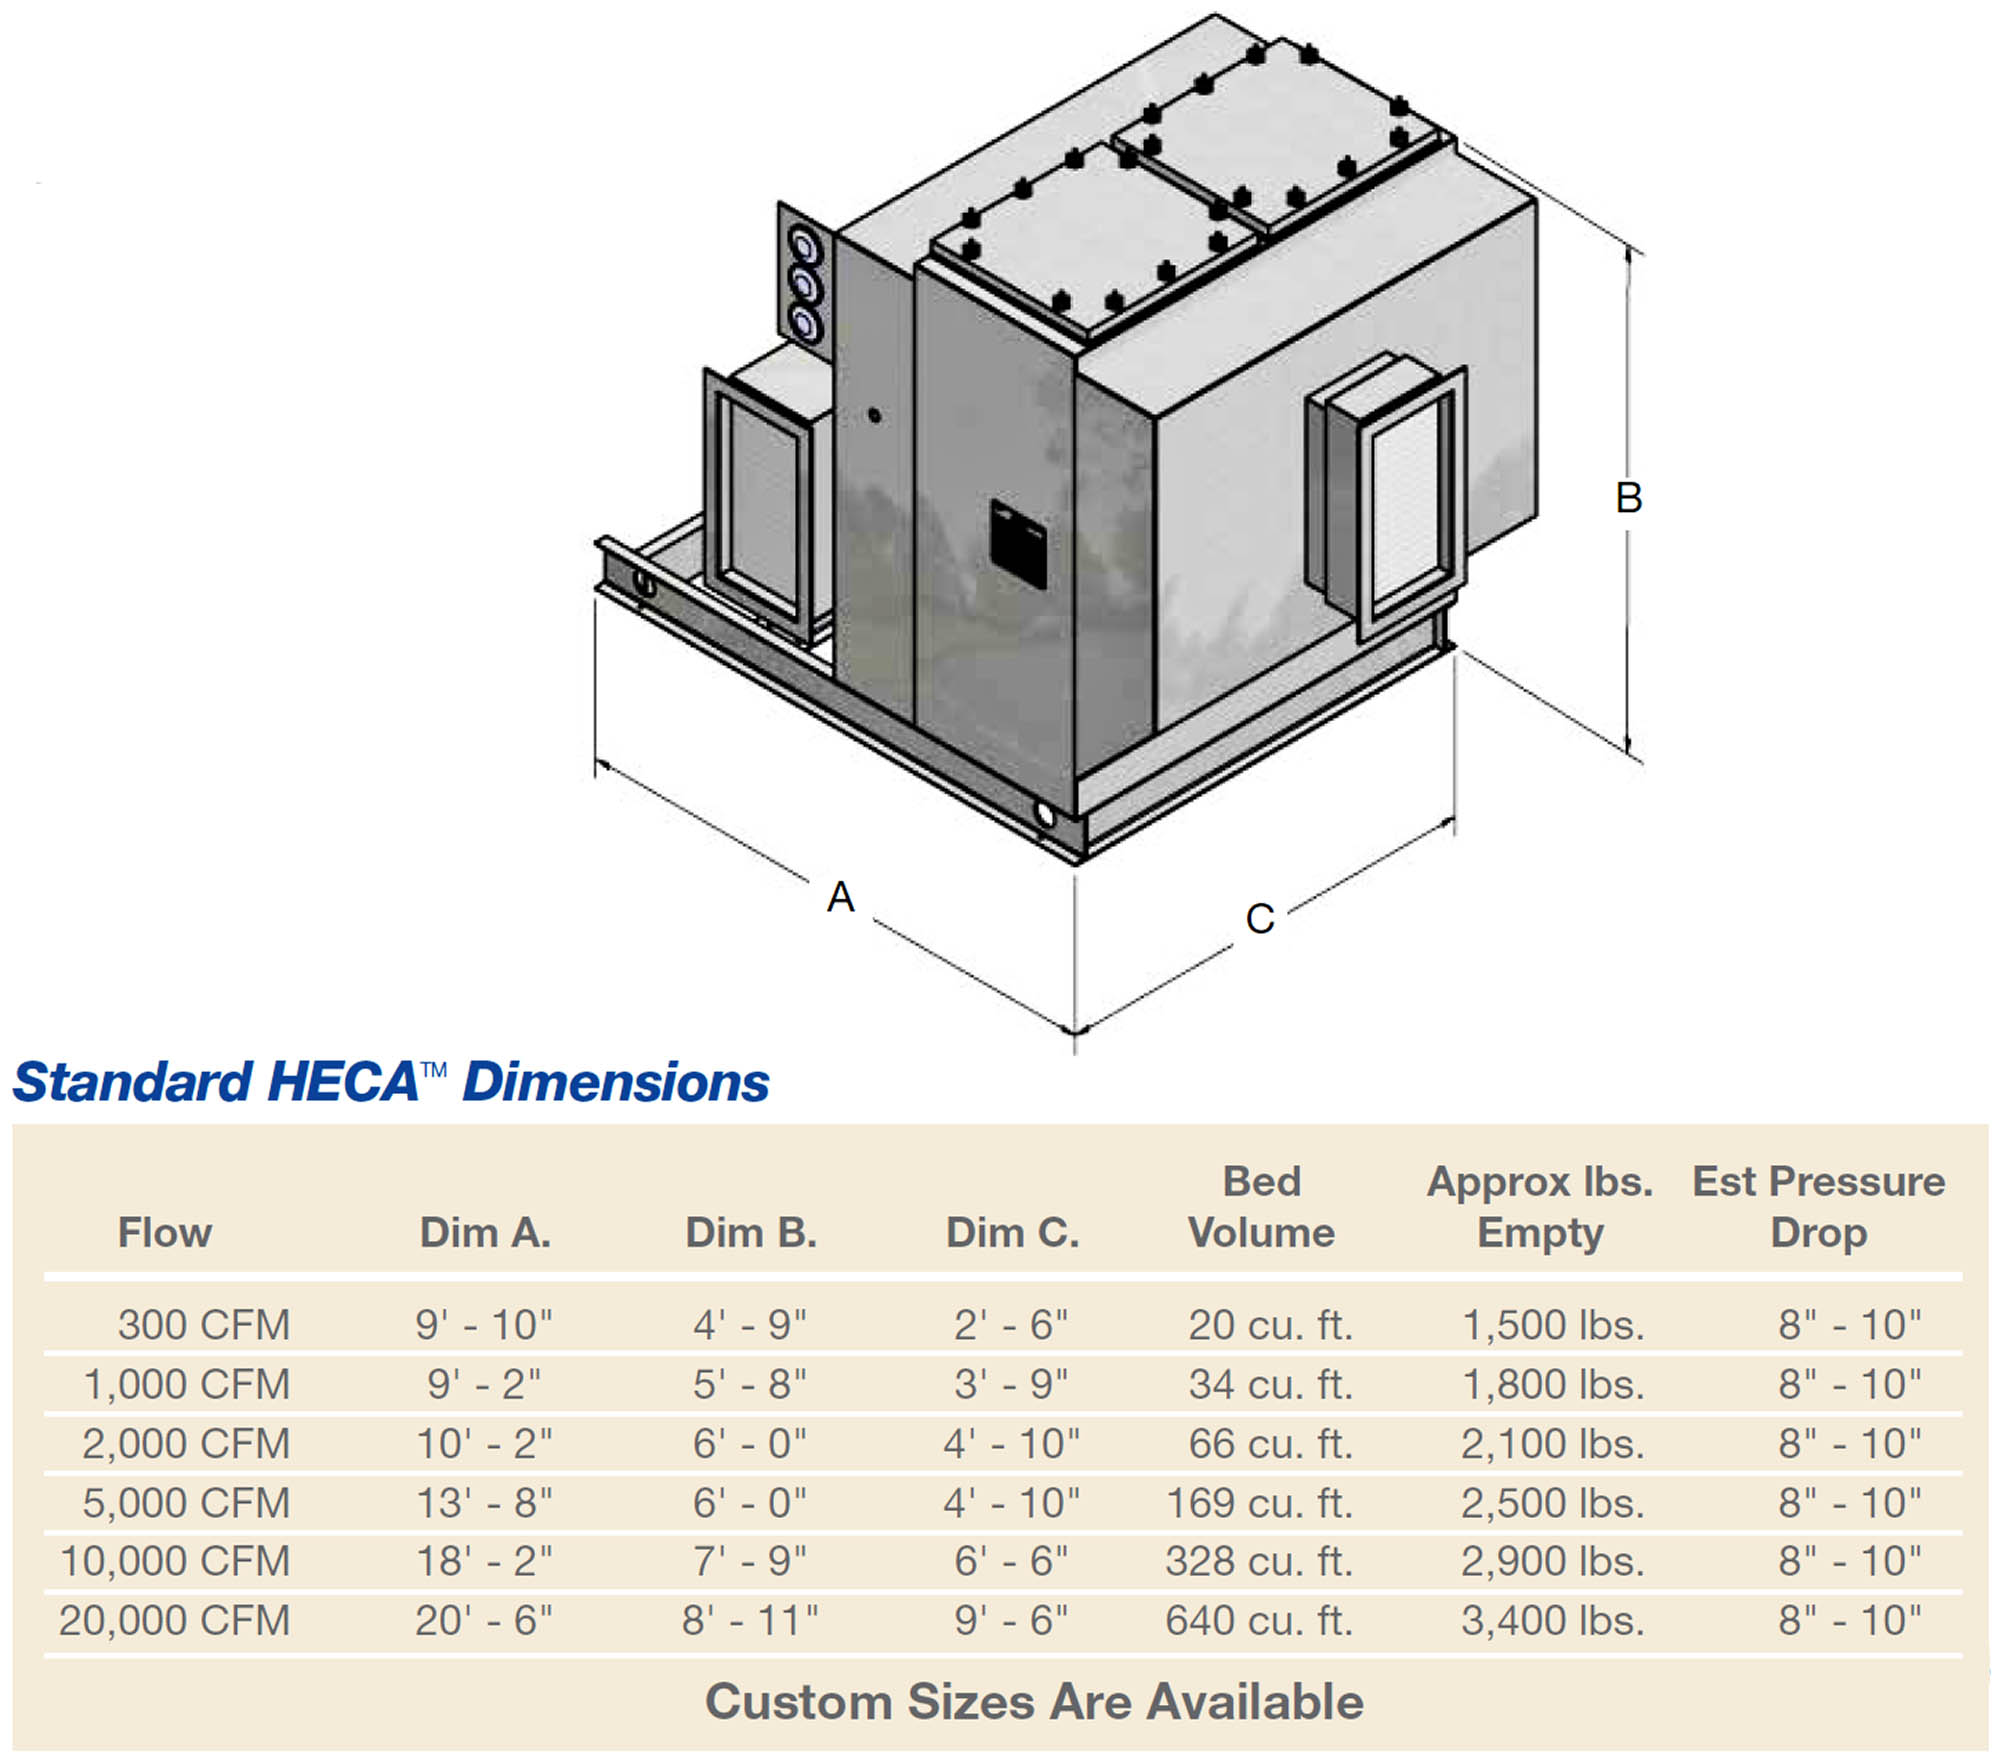 2020.07.13-Continental-Carbon-HDB-HECA-Deep-Bed-Adsorbers-5